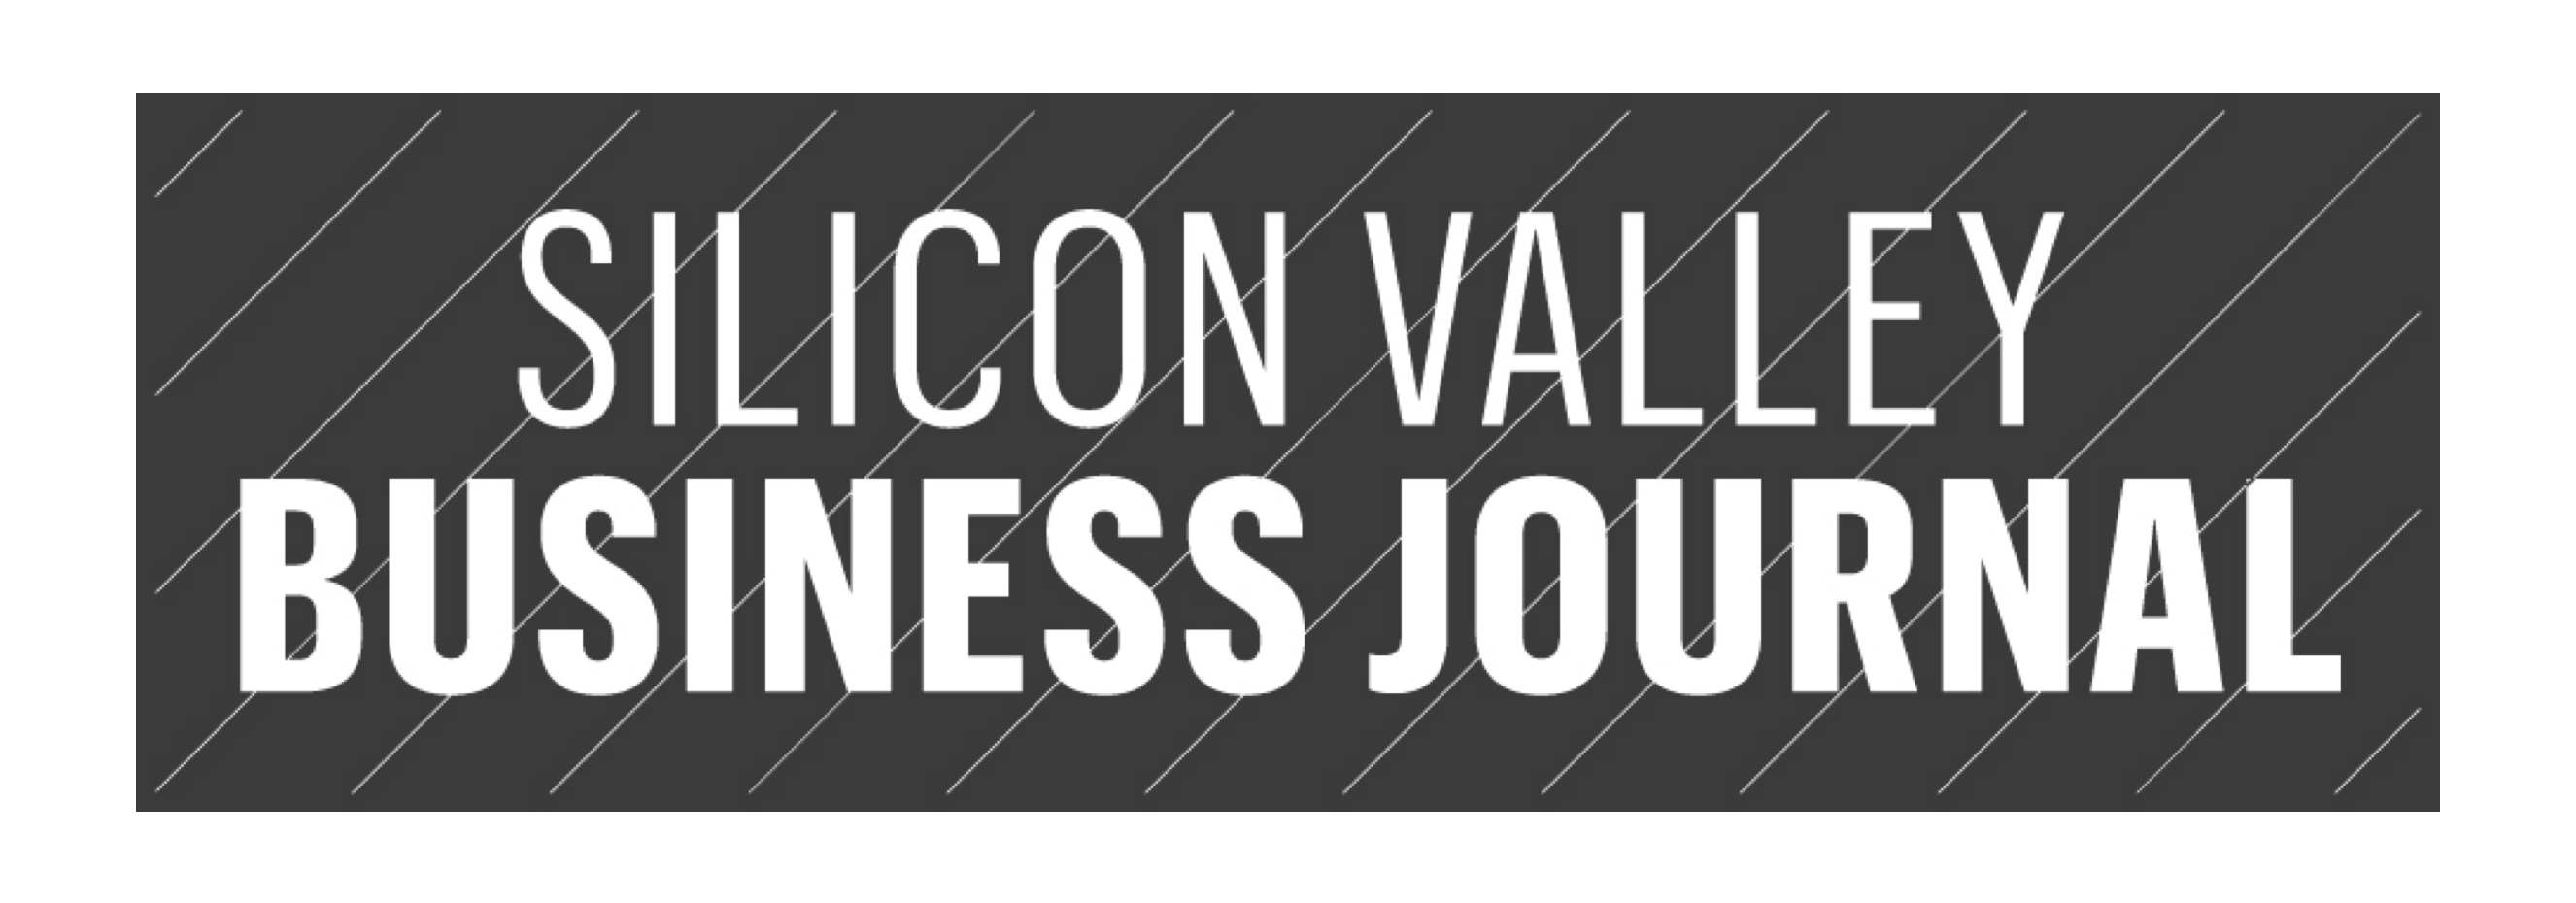 silicon-valley-business-journal